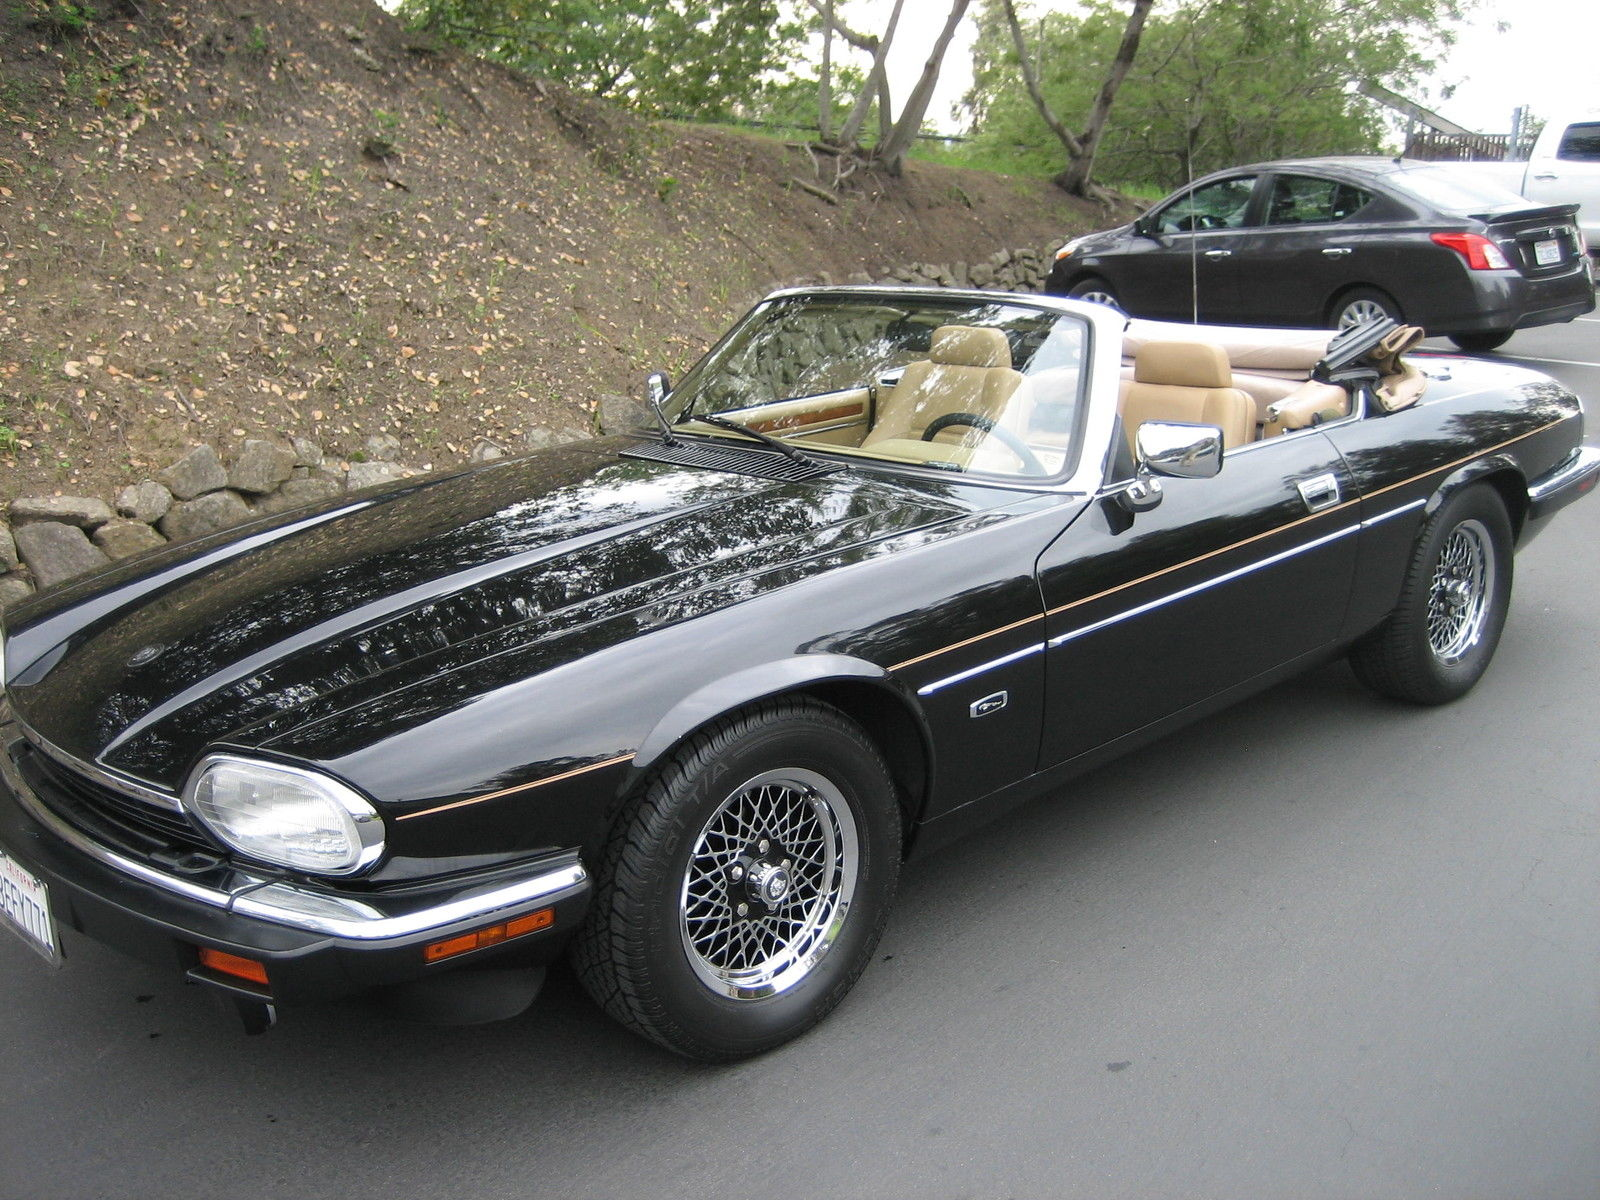 1993 jaguar xjs convertible 2 door 4 0l black tan power top all original classic jaguar. Black Bedroom Furniture Sets. Home Design Ideas